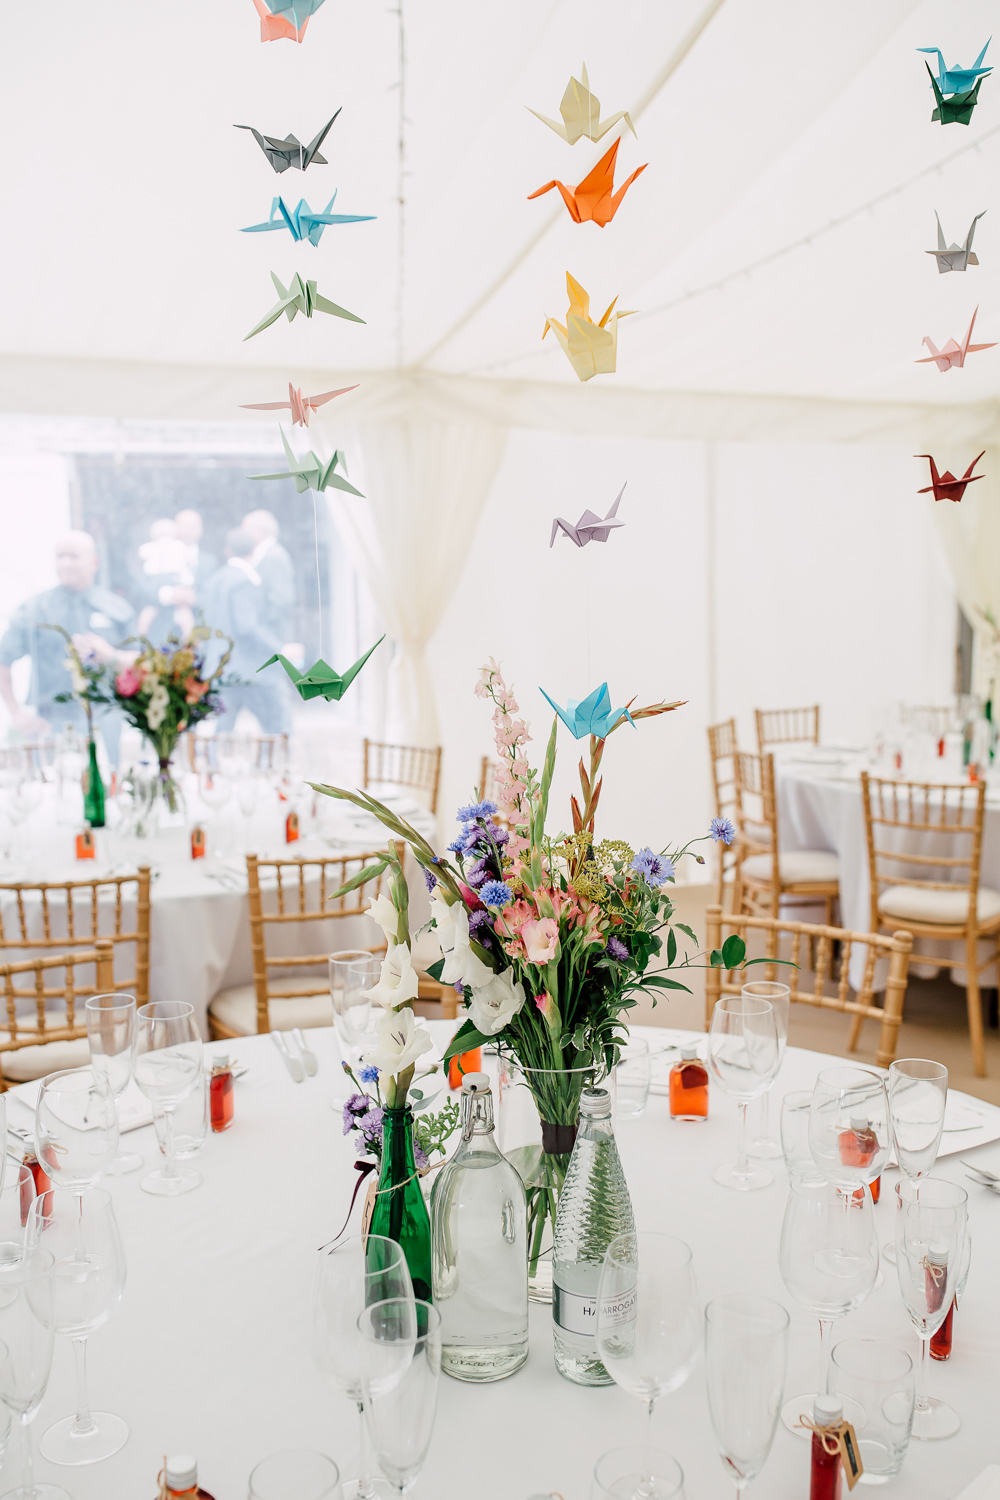 Marquee Origami Birds Paper Cranes Table Flowers Colourful Centrepiece Barff Country House Wedding Sarah Beth Photo